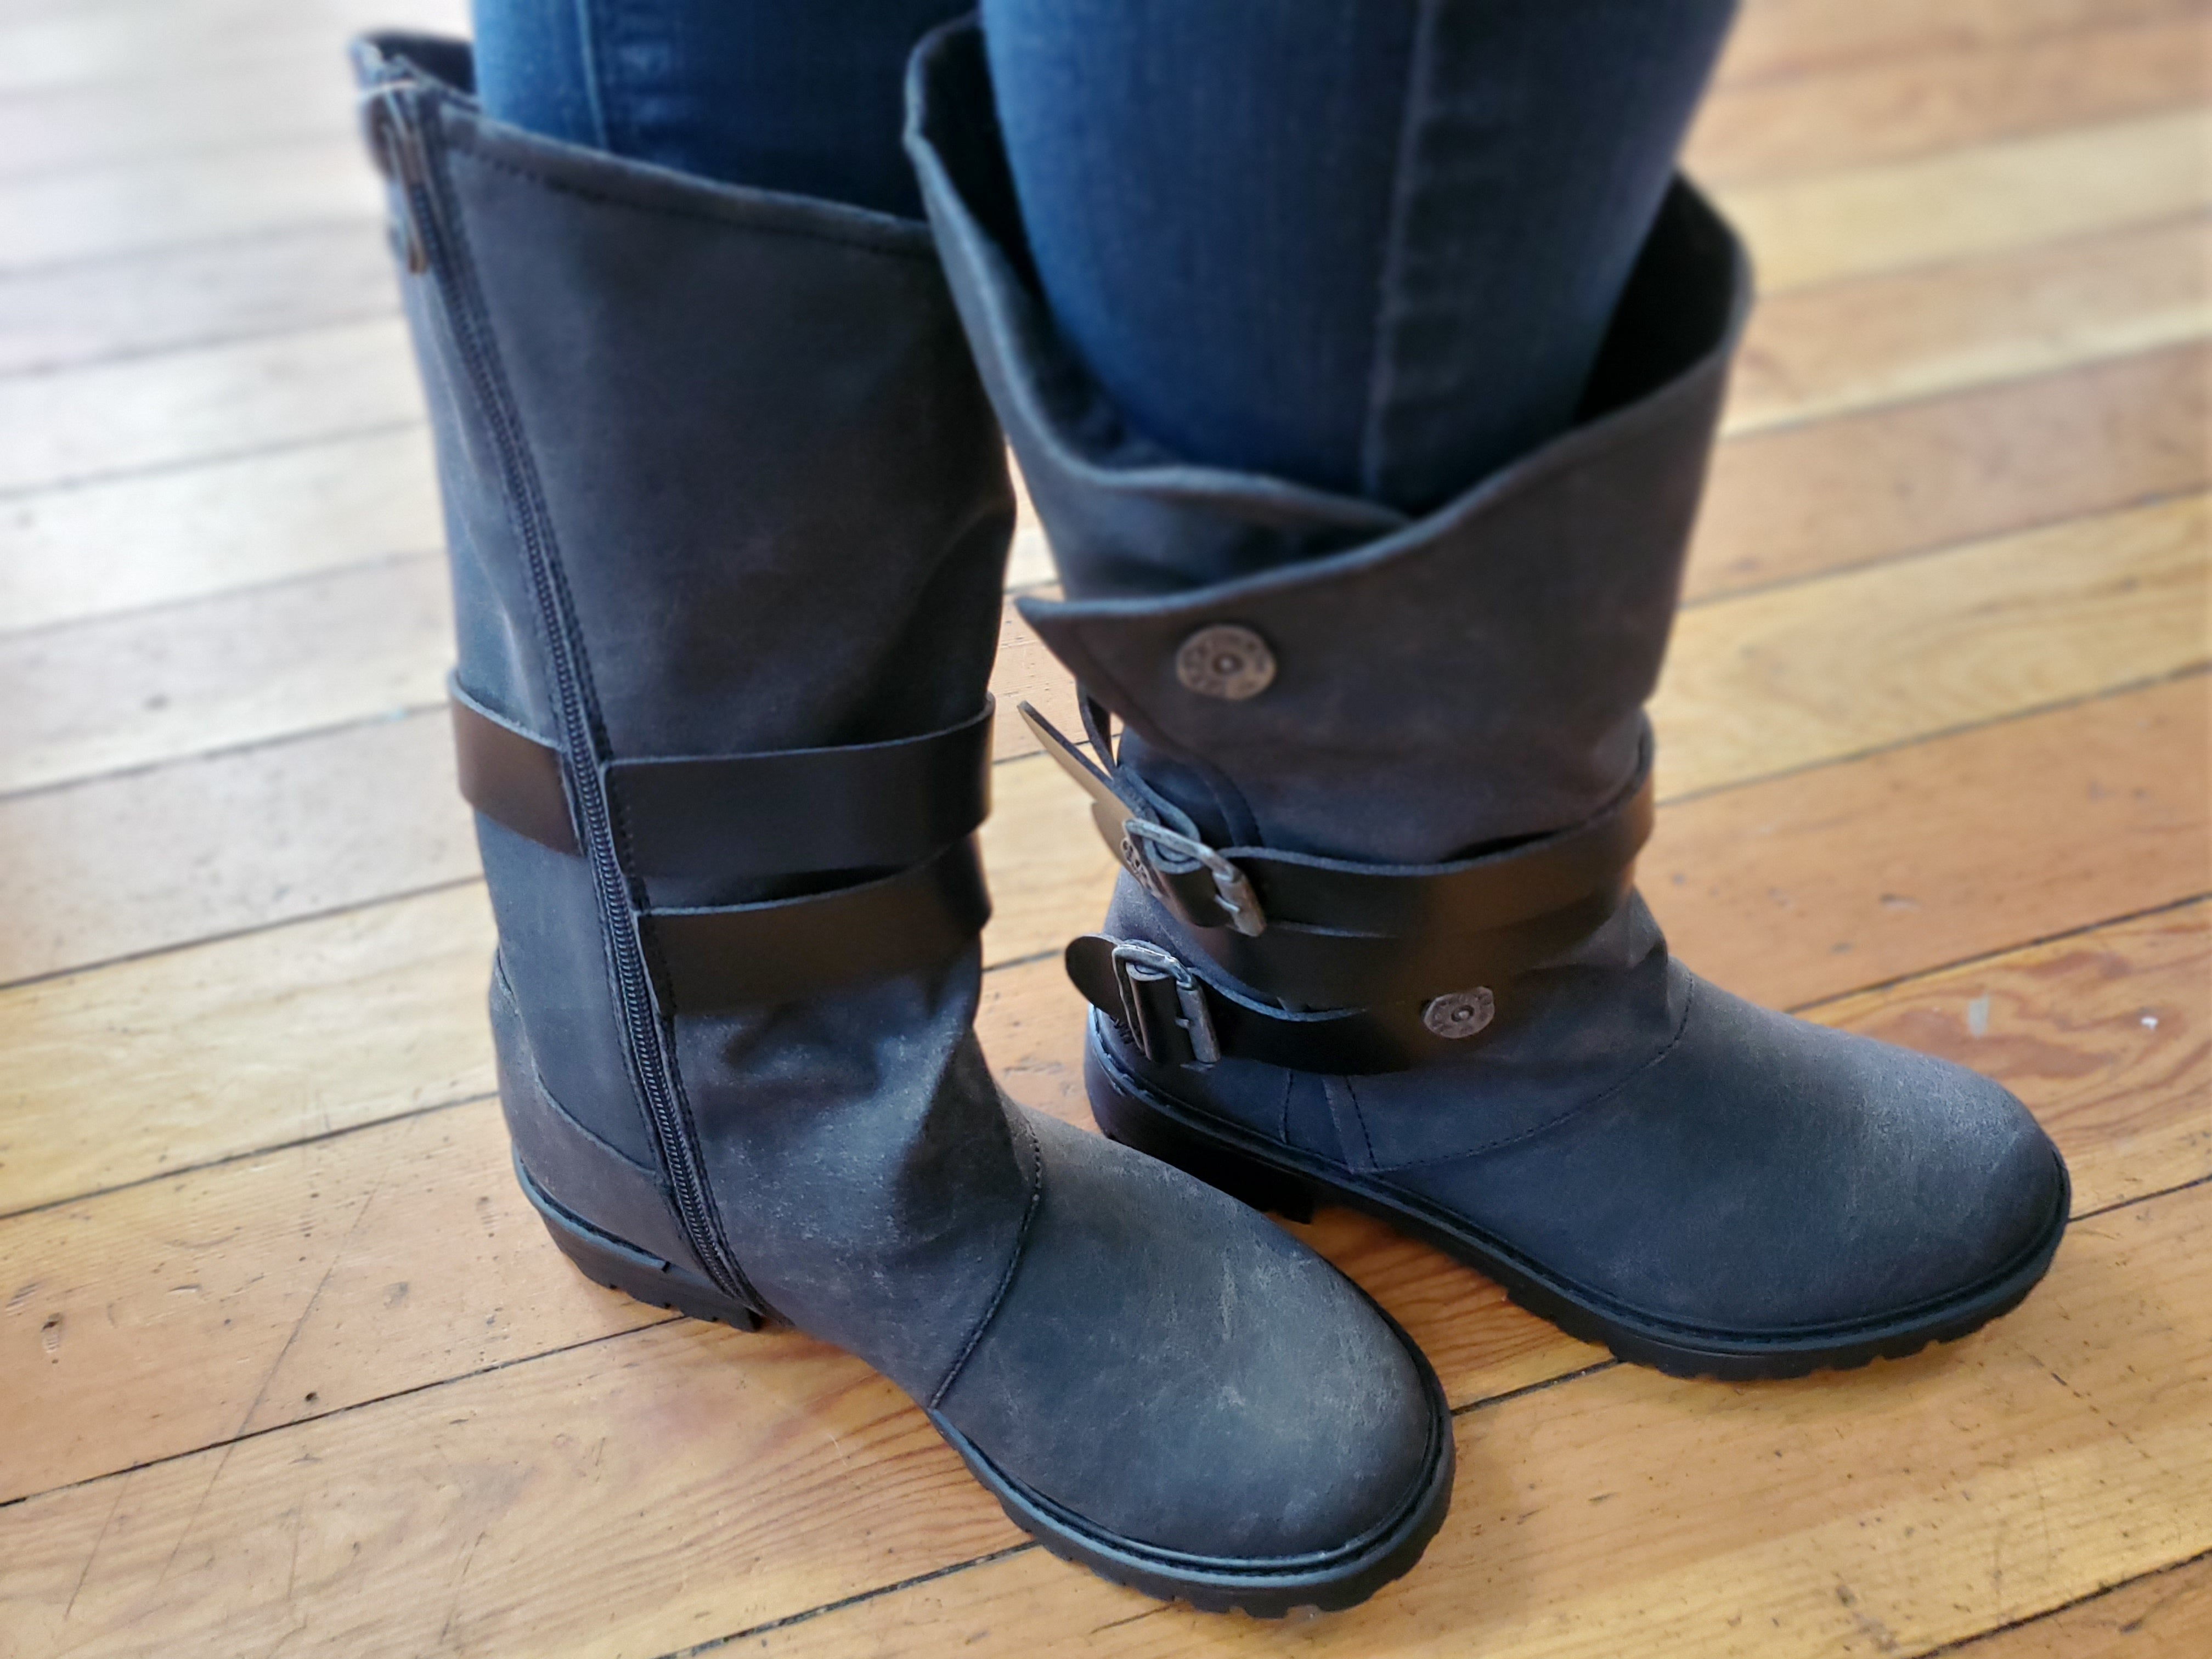 Blowfish Rider Boots in Black